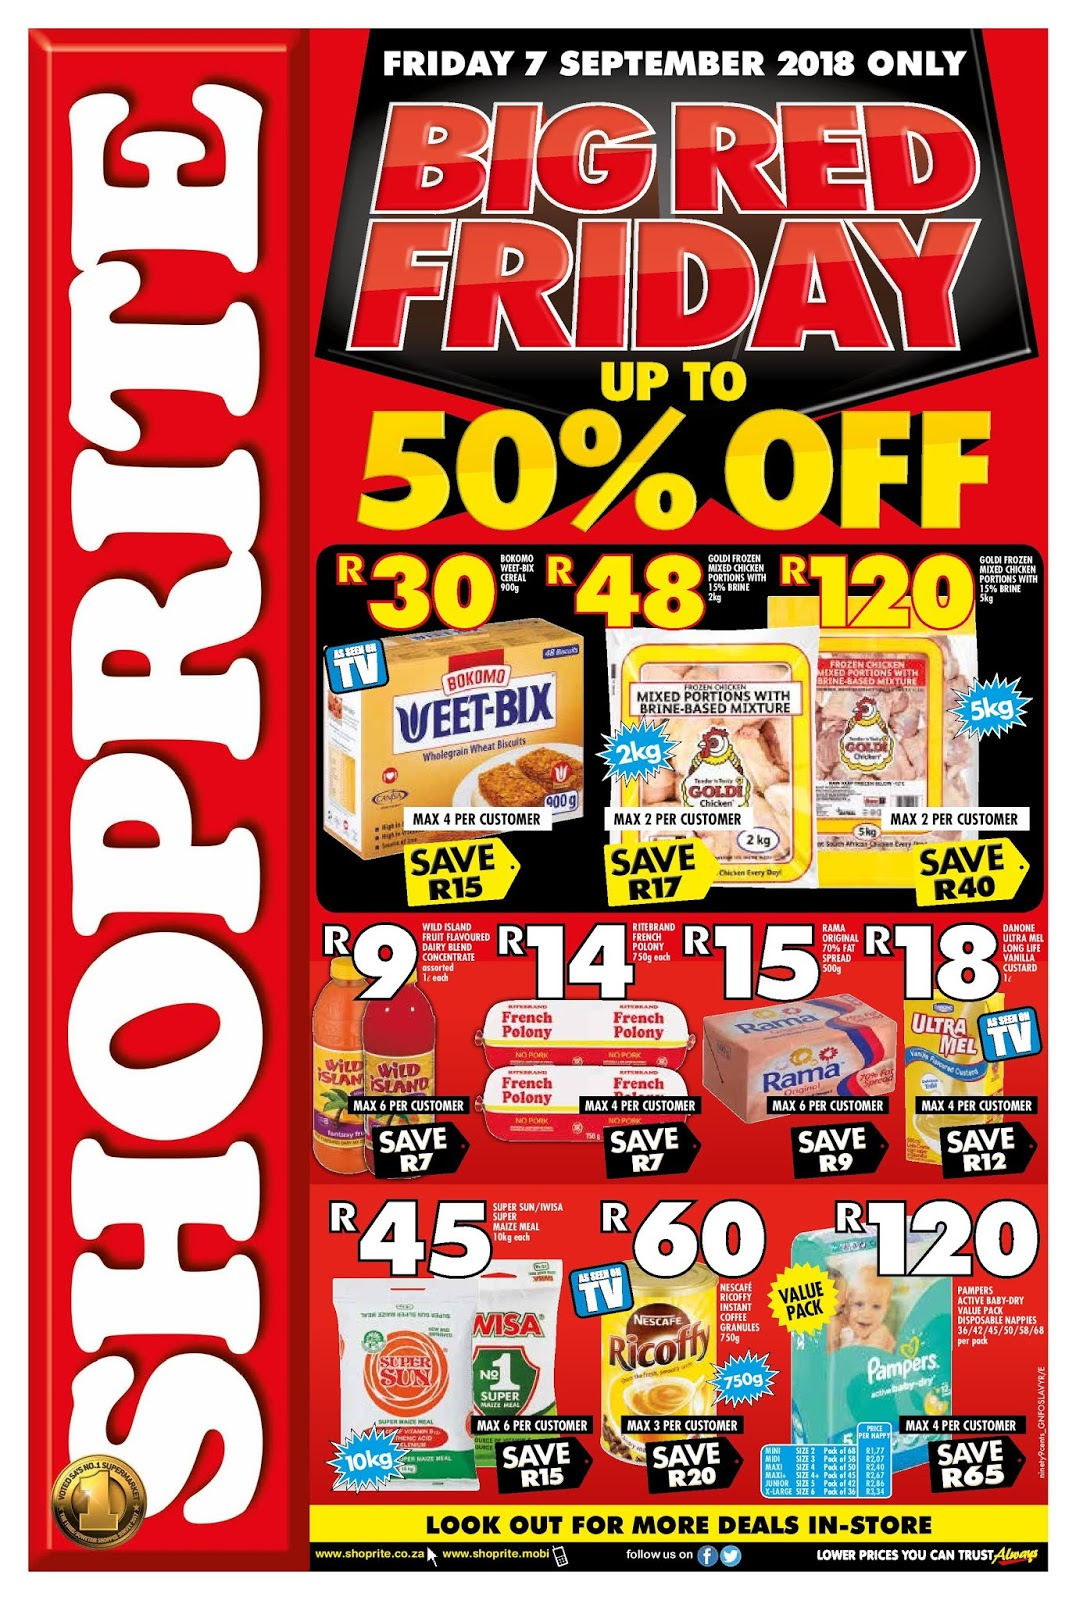 Browse Shoprite's latest specials and promotions at your nearest store for extra low prices on everyday groceries, household goods and much more.